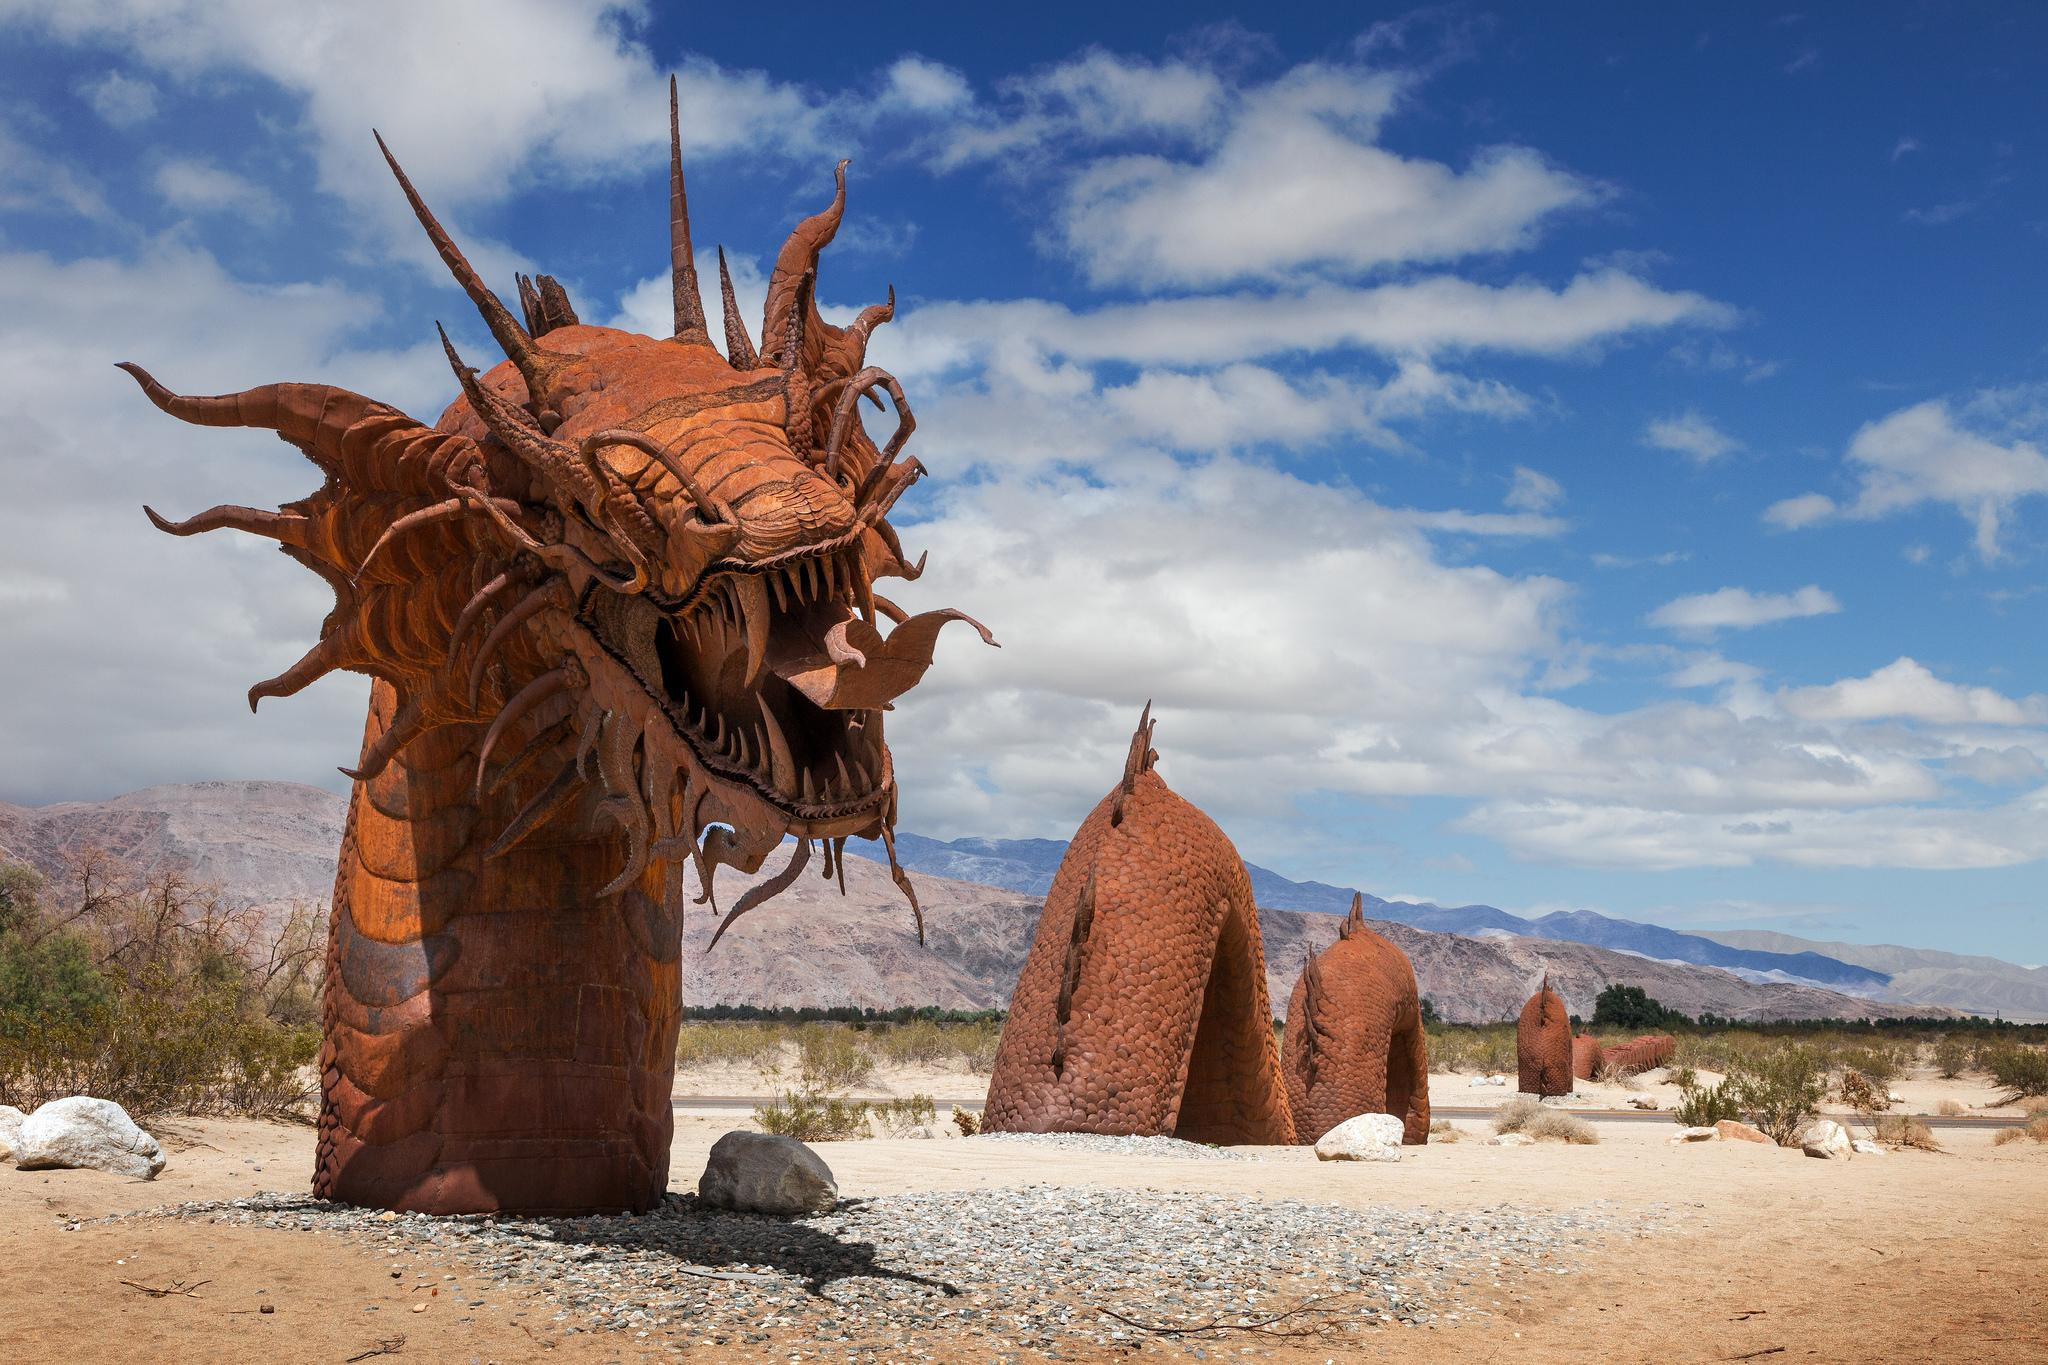 обои Боррего-Спрингс, Калифорния, Serpent Sculpture, Borrego Springs картинки фото